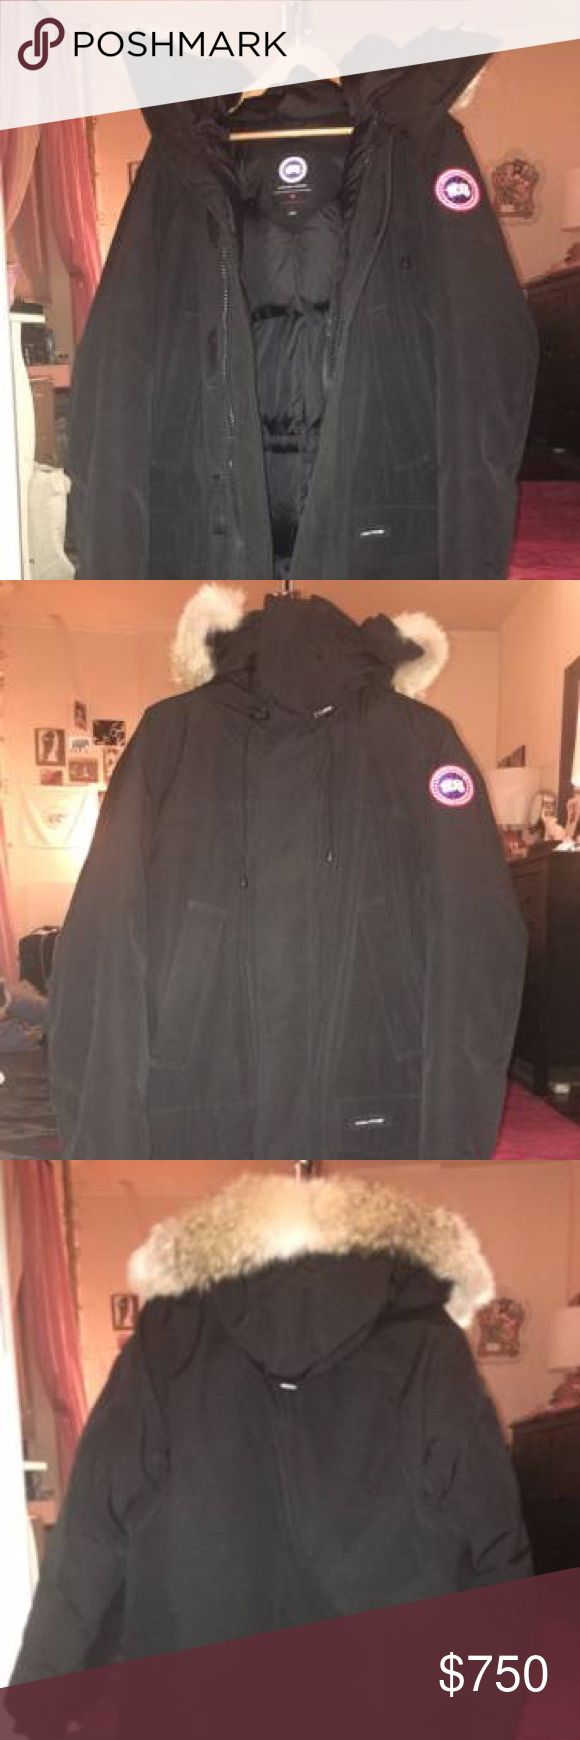 Canada Goose Langford Parka FurTrimmed Hood, XL I purchased this jacket very recently as a birthday gift for my husband and this week we found out that we will be moving to Central America in January so he won't be needing it after all! It's brand new in excellent condition as he only wore it once around the house! I spent nearly $1000 with shipping so I'm pretty set at $750 although I'm willing to negotiate. - New w/out tags - Black, XL mens - Parka Canada Goose Jackets & Coats Puffers